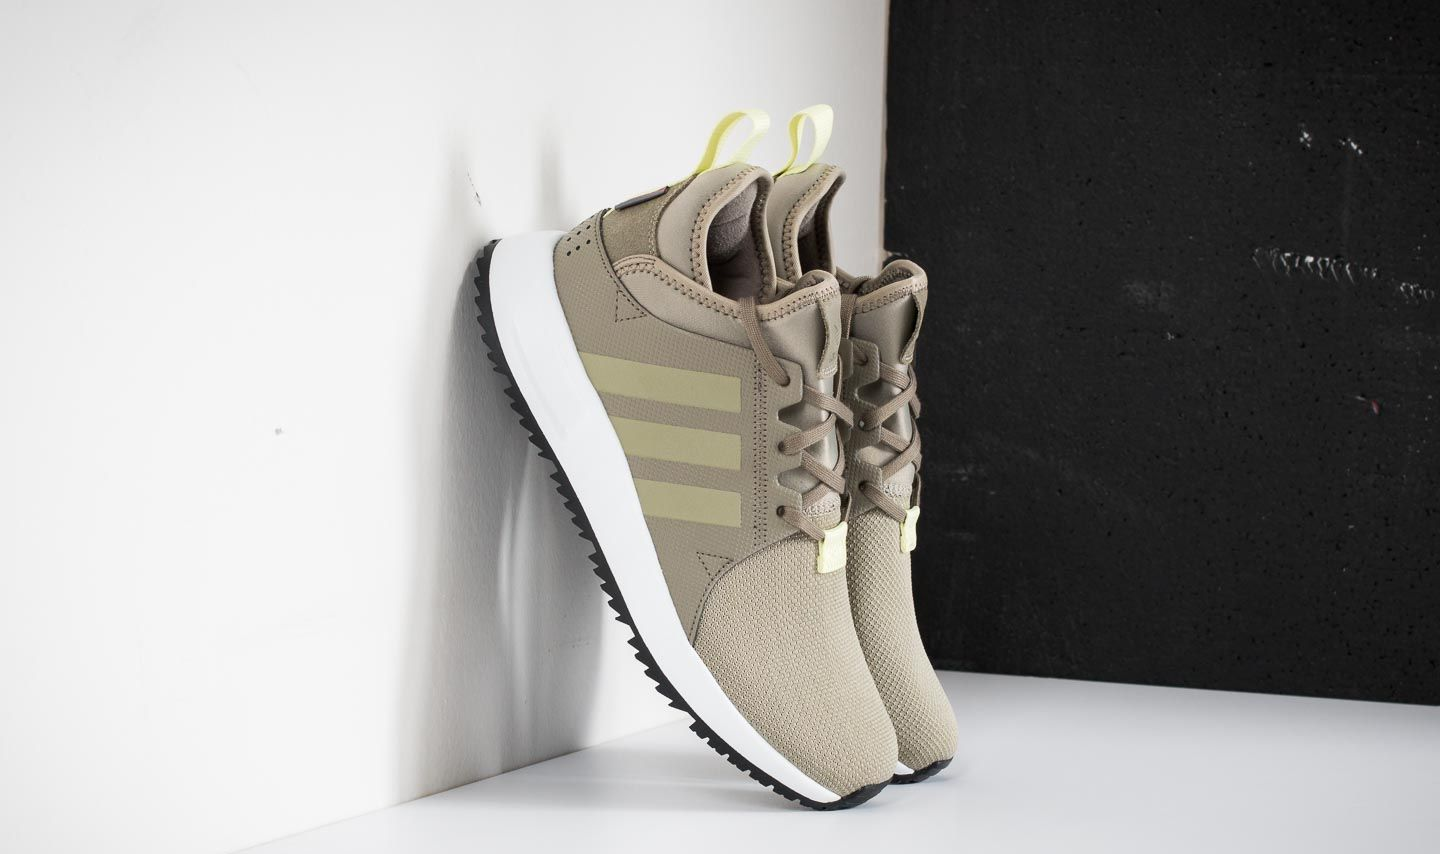 7a8605a75a6396 adidas X PLR Sneakerboot Night Cargo  Tech Beige  Core Black at a great  price 88